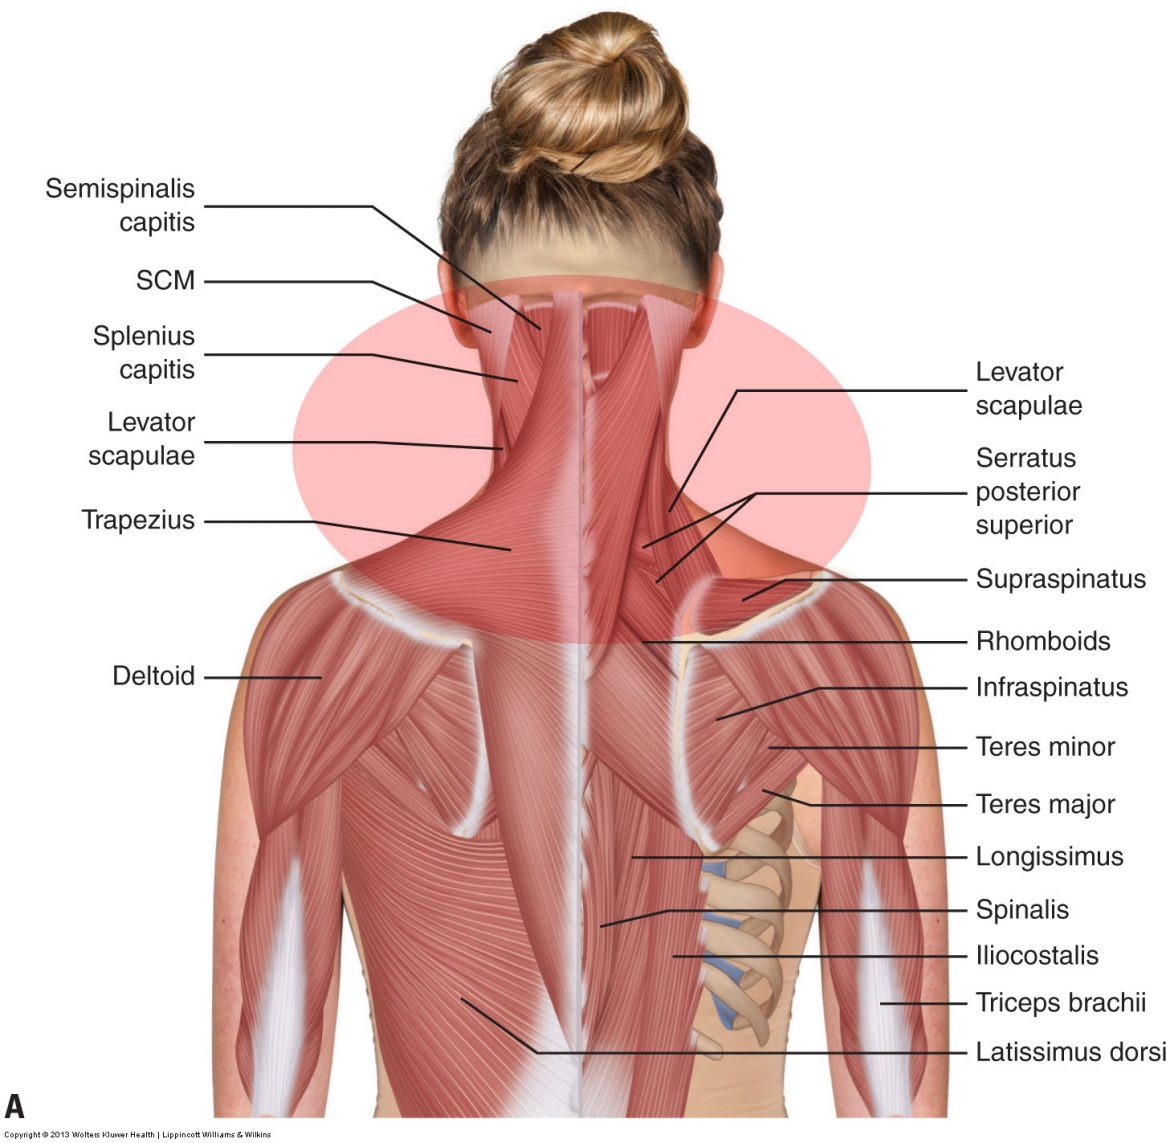 muscle spasming of the neck most often affects the posterior extensor musculature